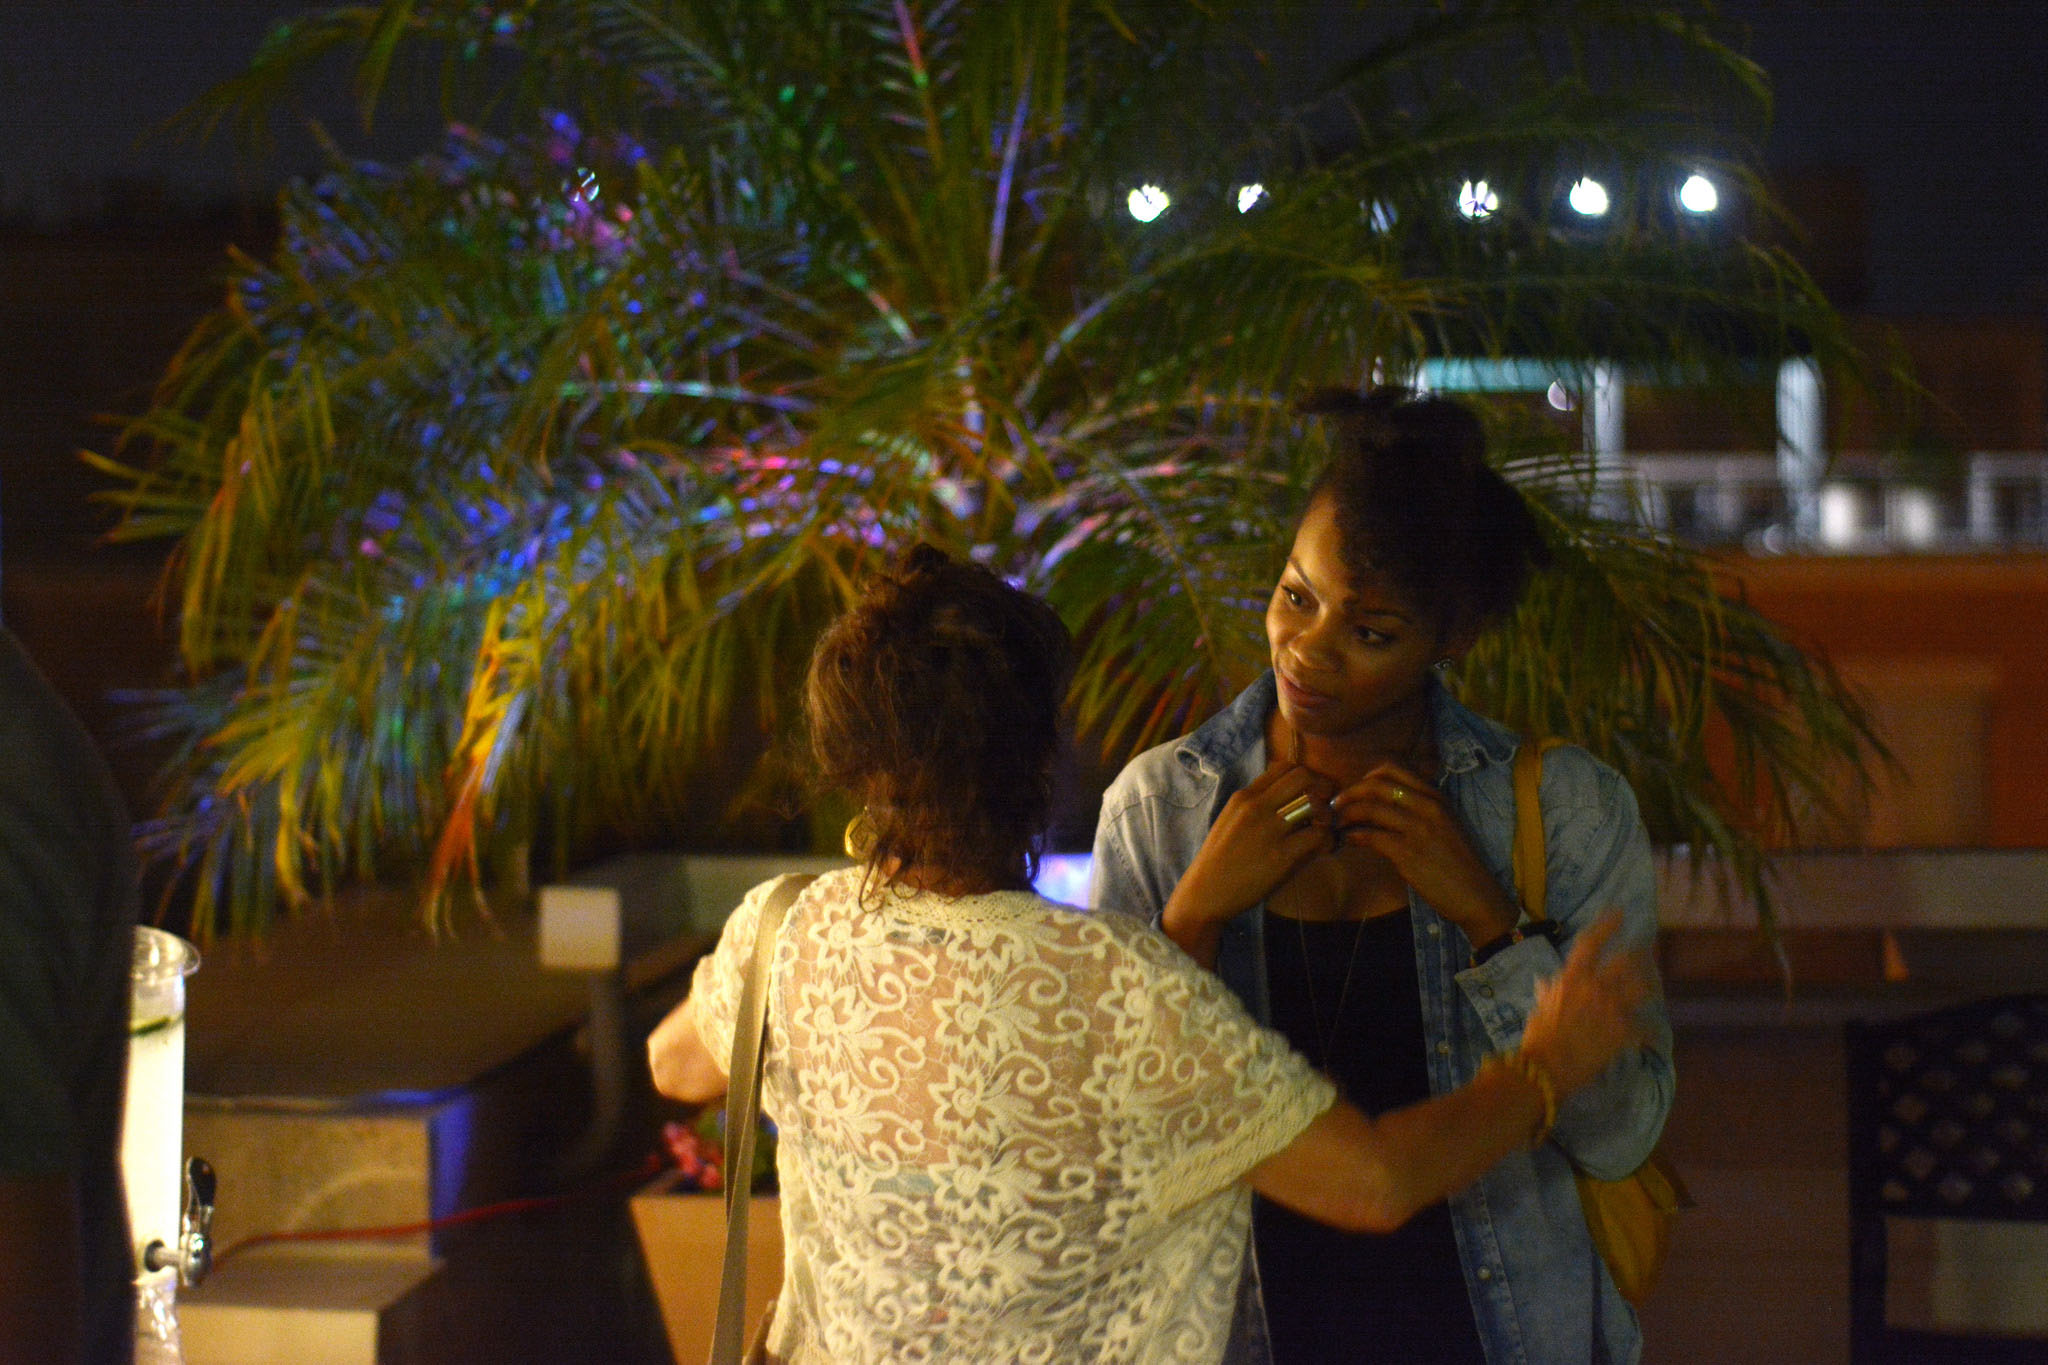 Filmmakers and guests mingle at a rooftop party at DC Shorts. (Courtesy DC Shorts)